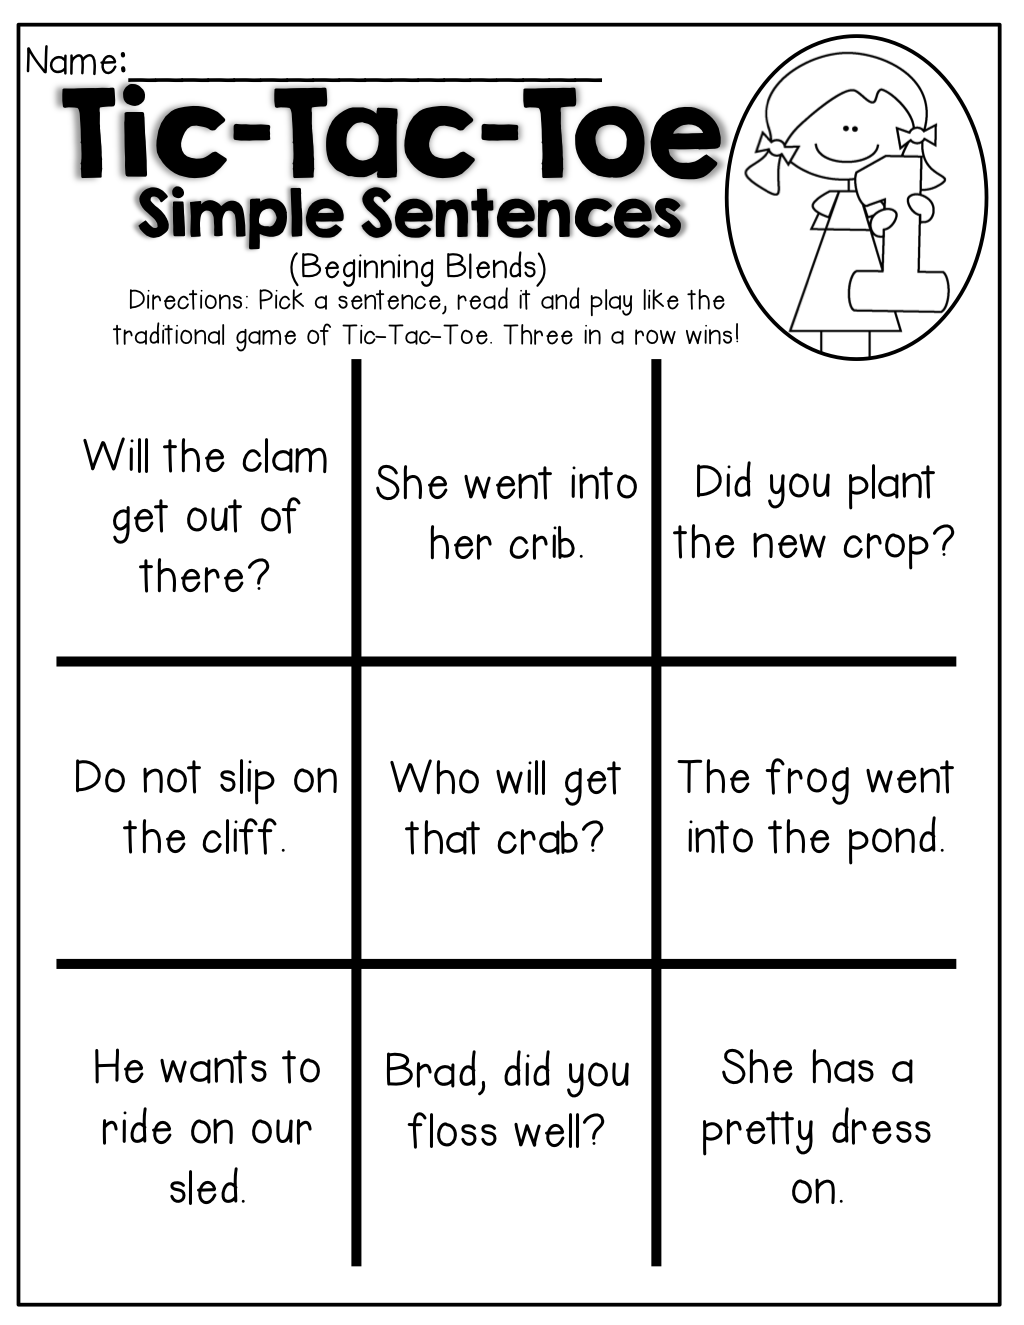 Tic Tac Toe With Simple Sentences Including Blends And